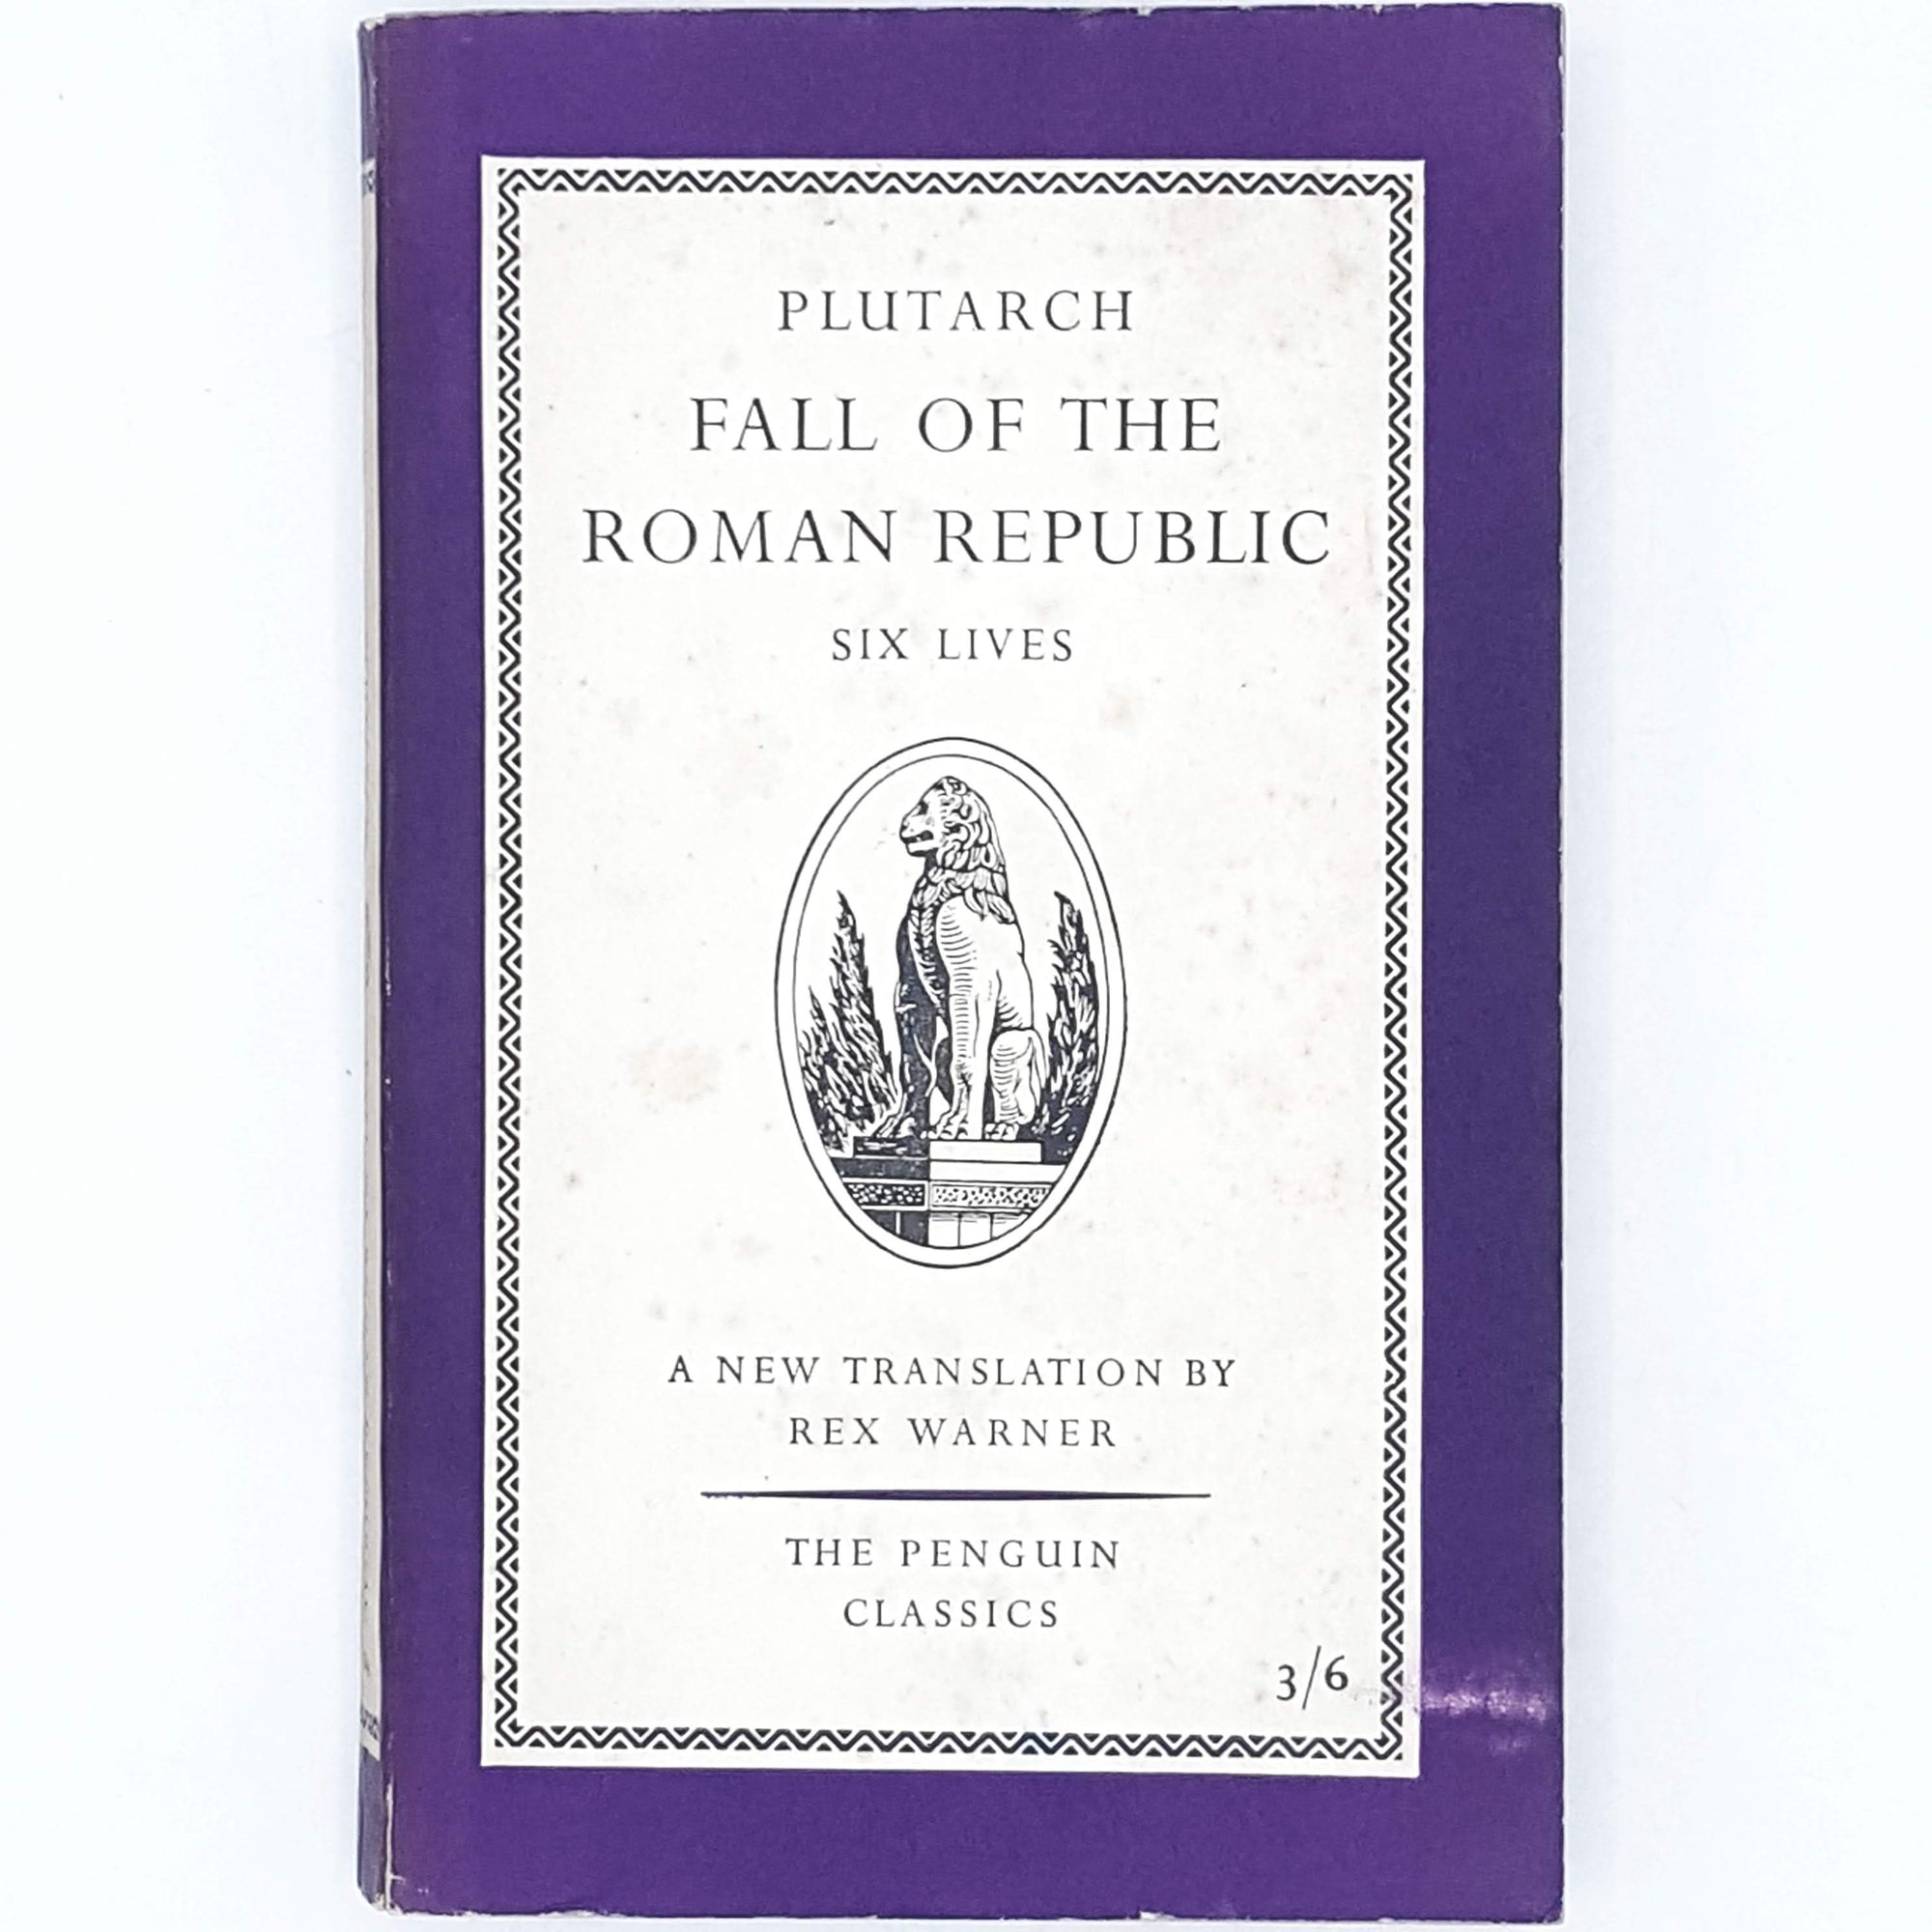 First Edition Plutarch's Fall of the Roman Republic 1958